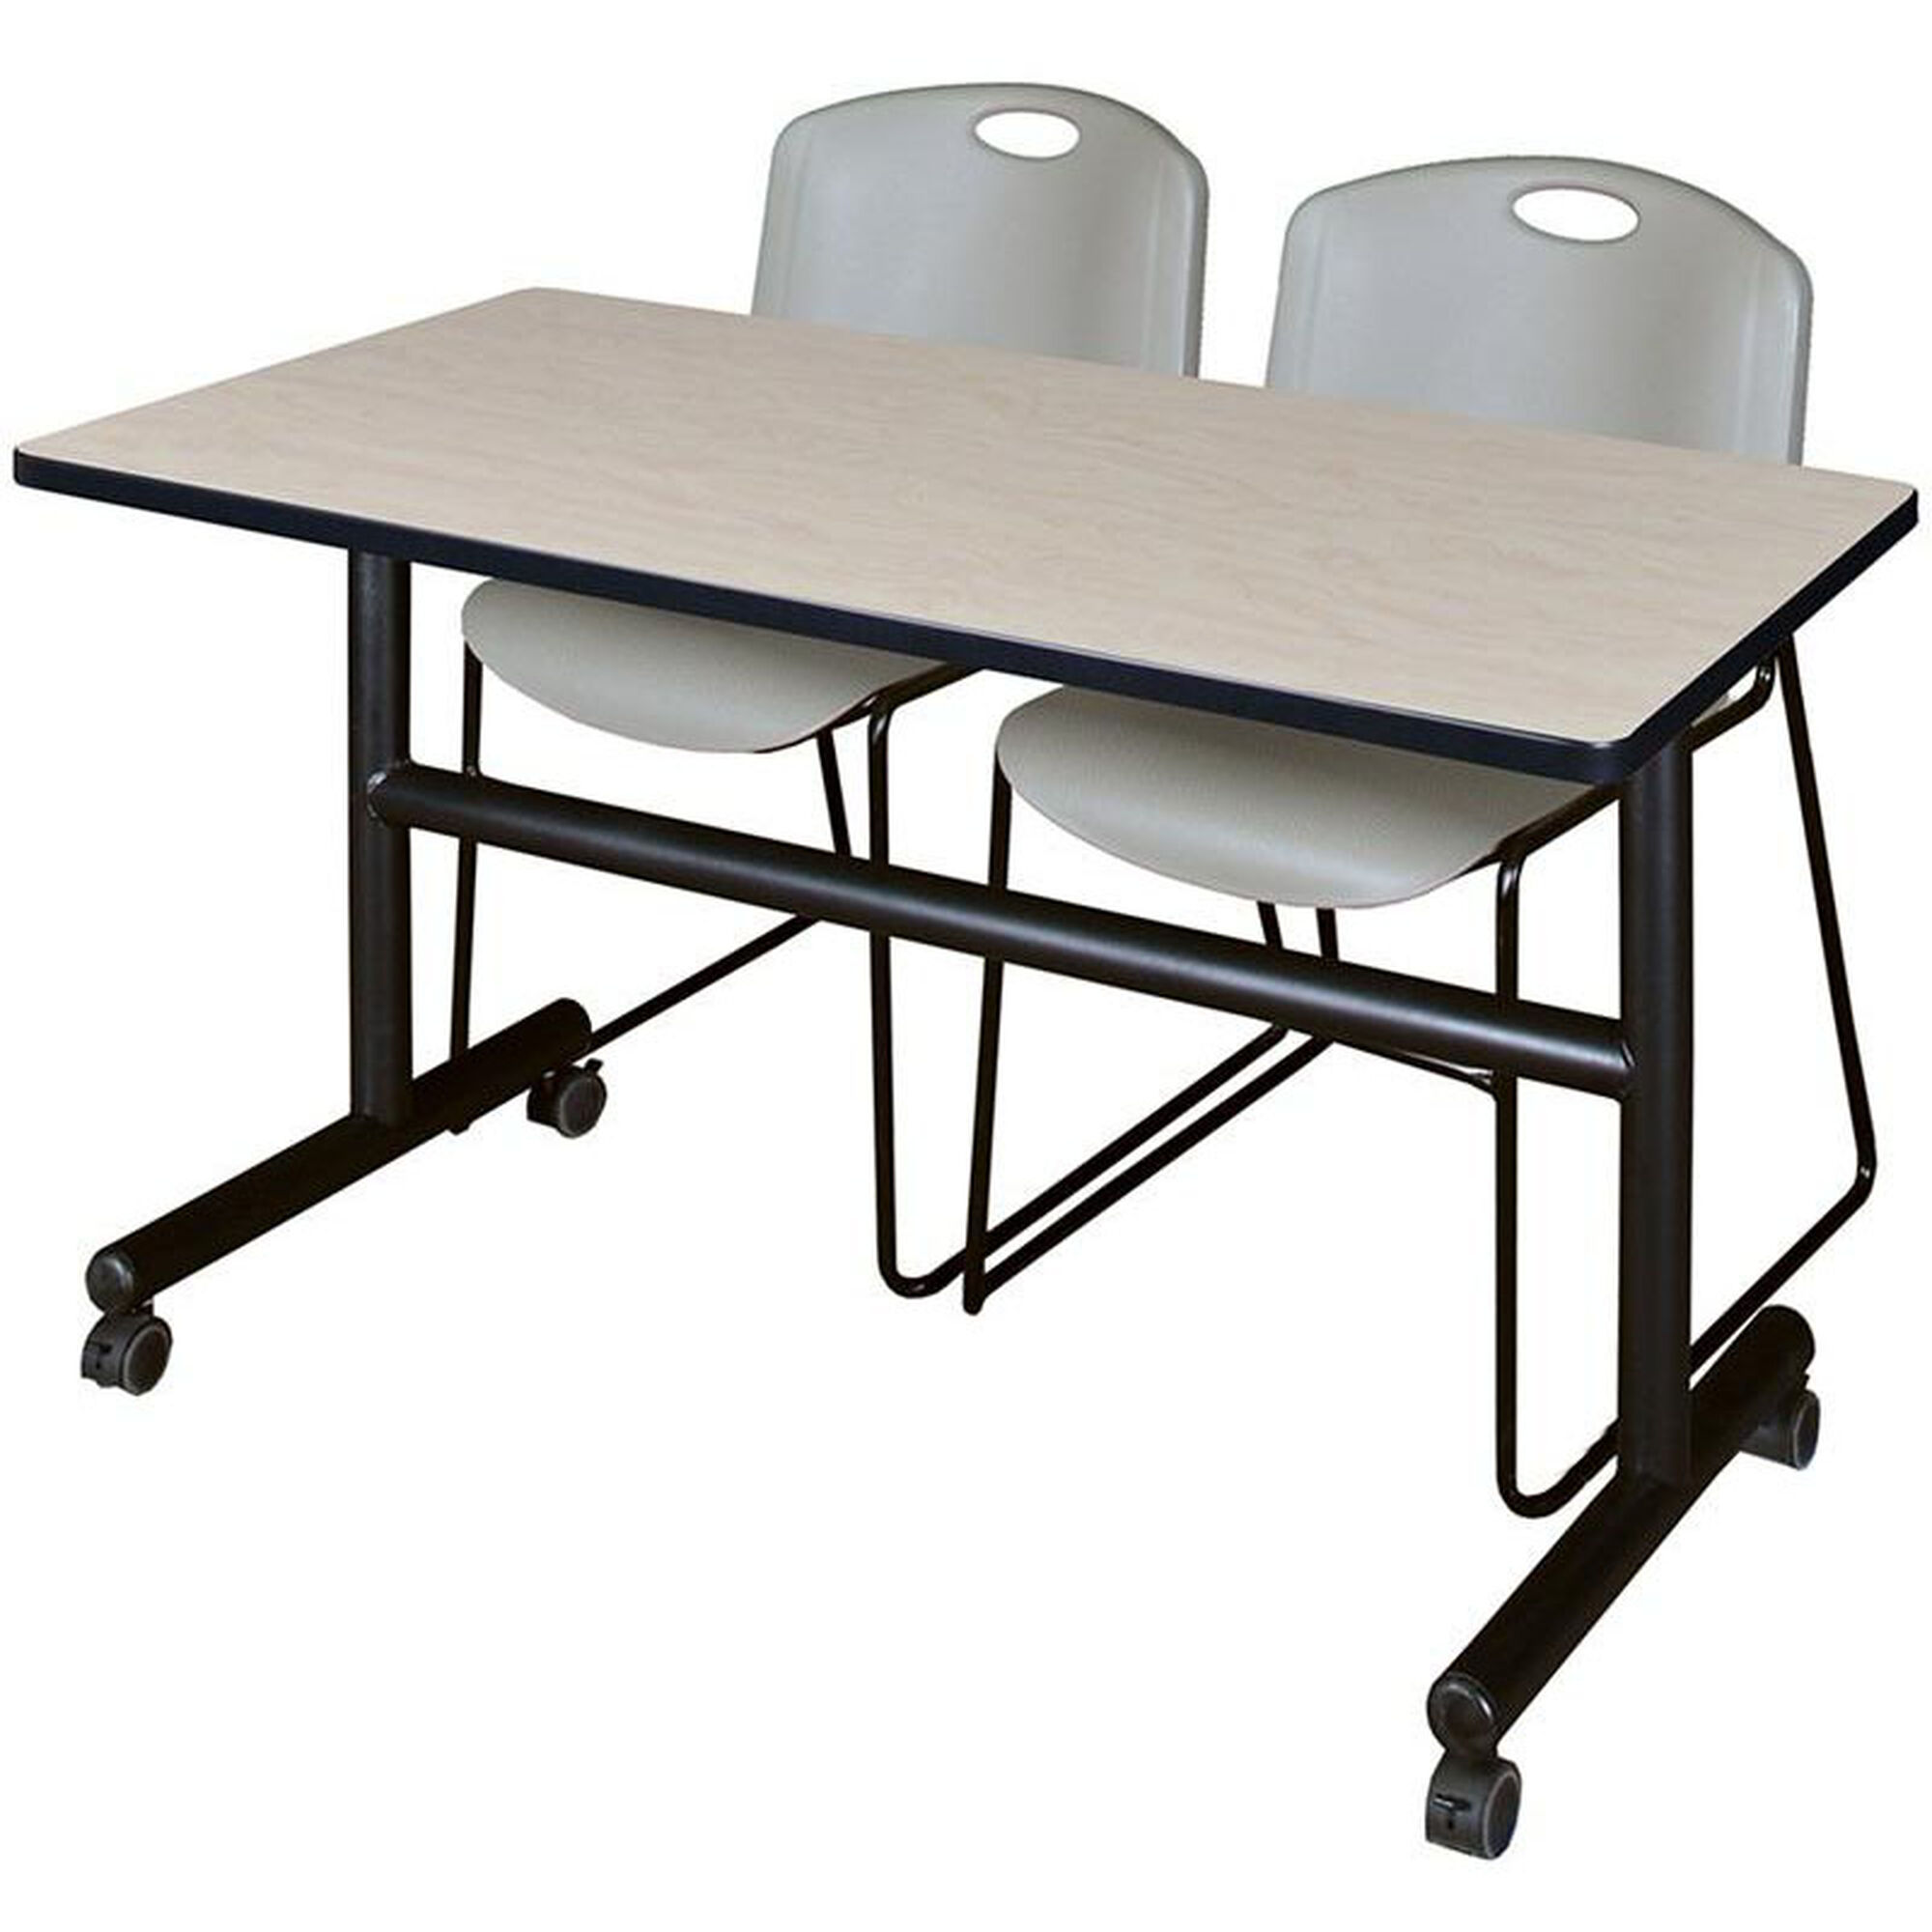 Regency seating mkft4824pl44gy reg mkft4824pl44gy for 108 table seats how many